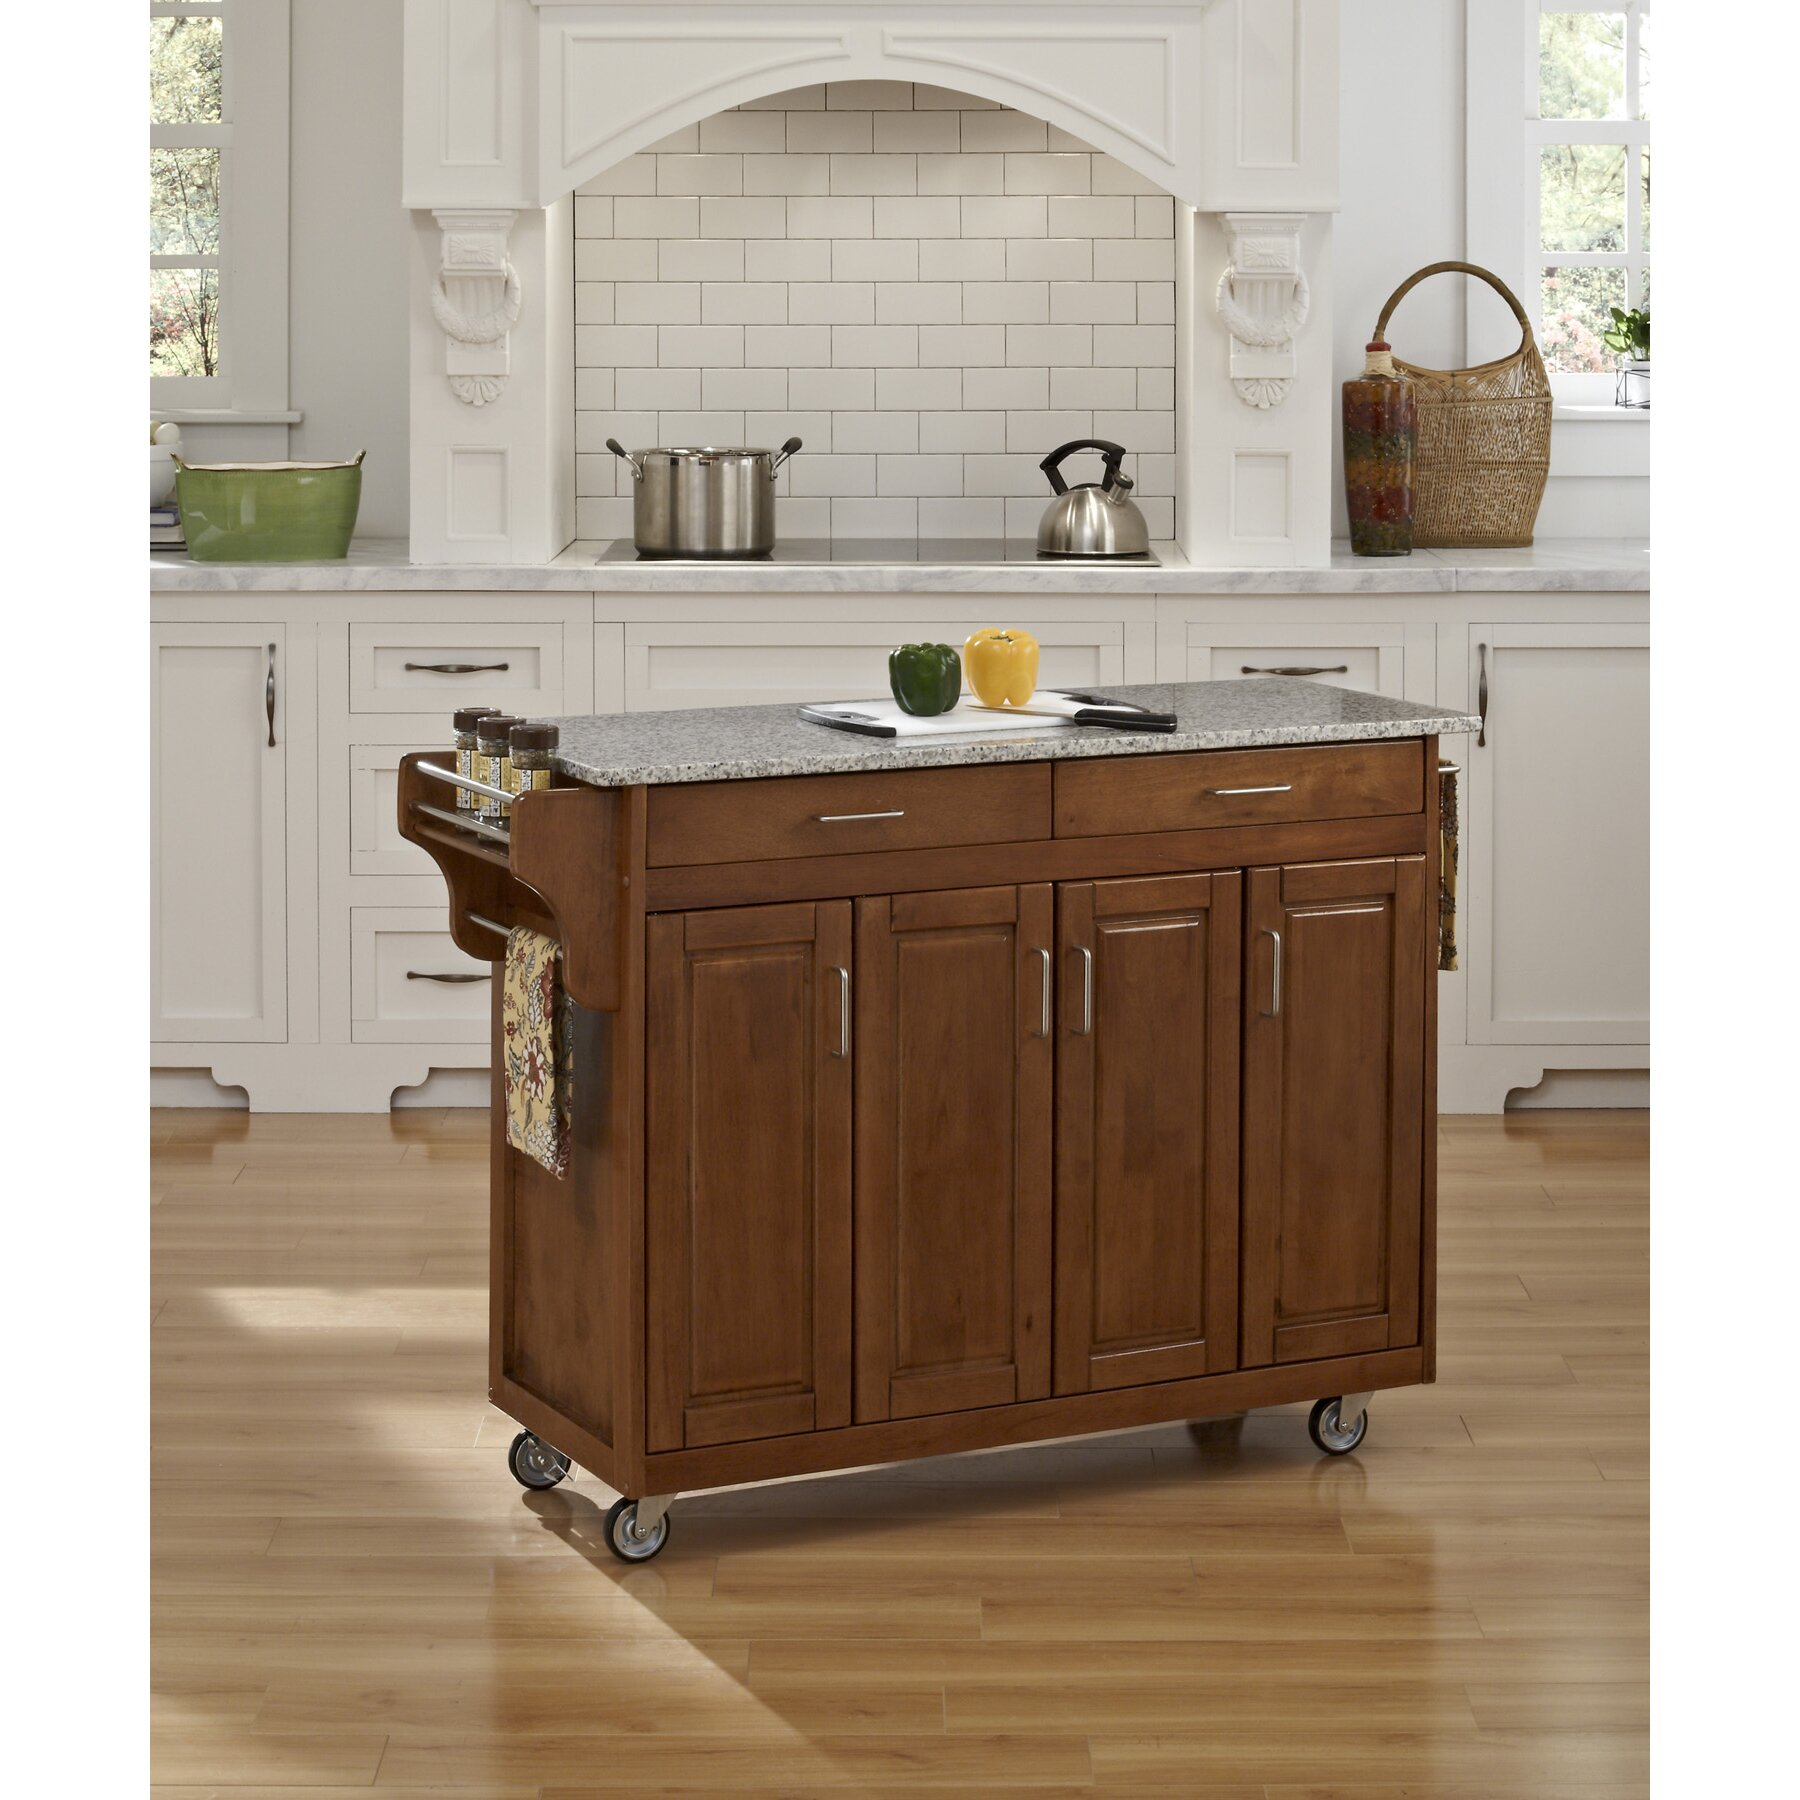 Granite Top Kitchen August Grove Regiene Kitchen Island With Granite Top Reviews